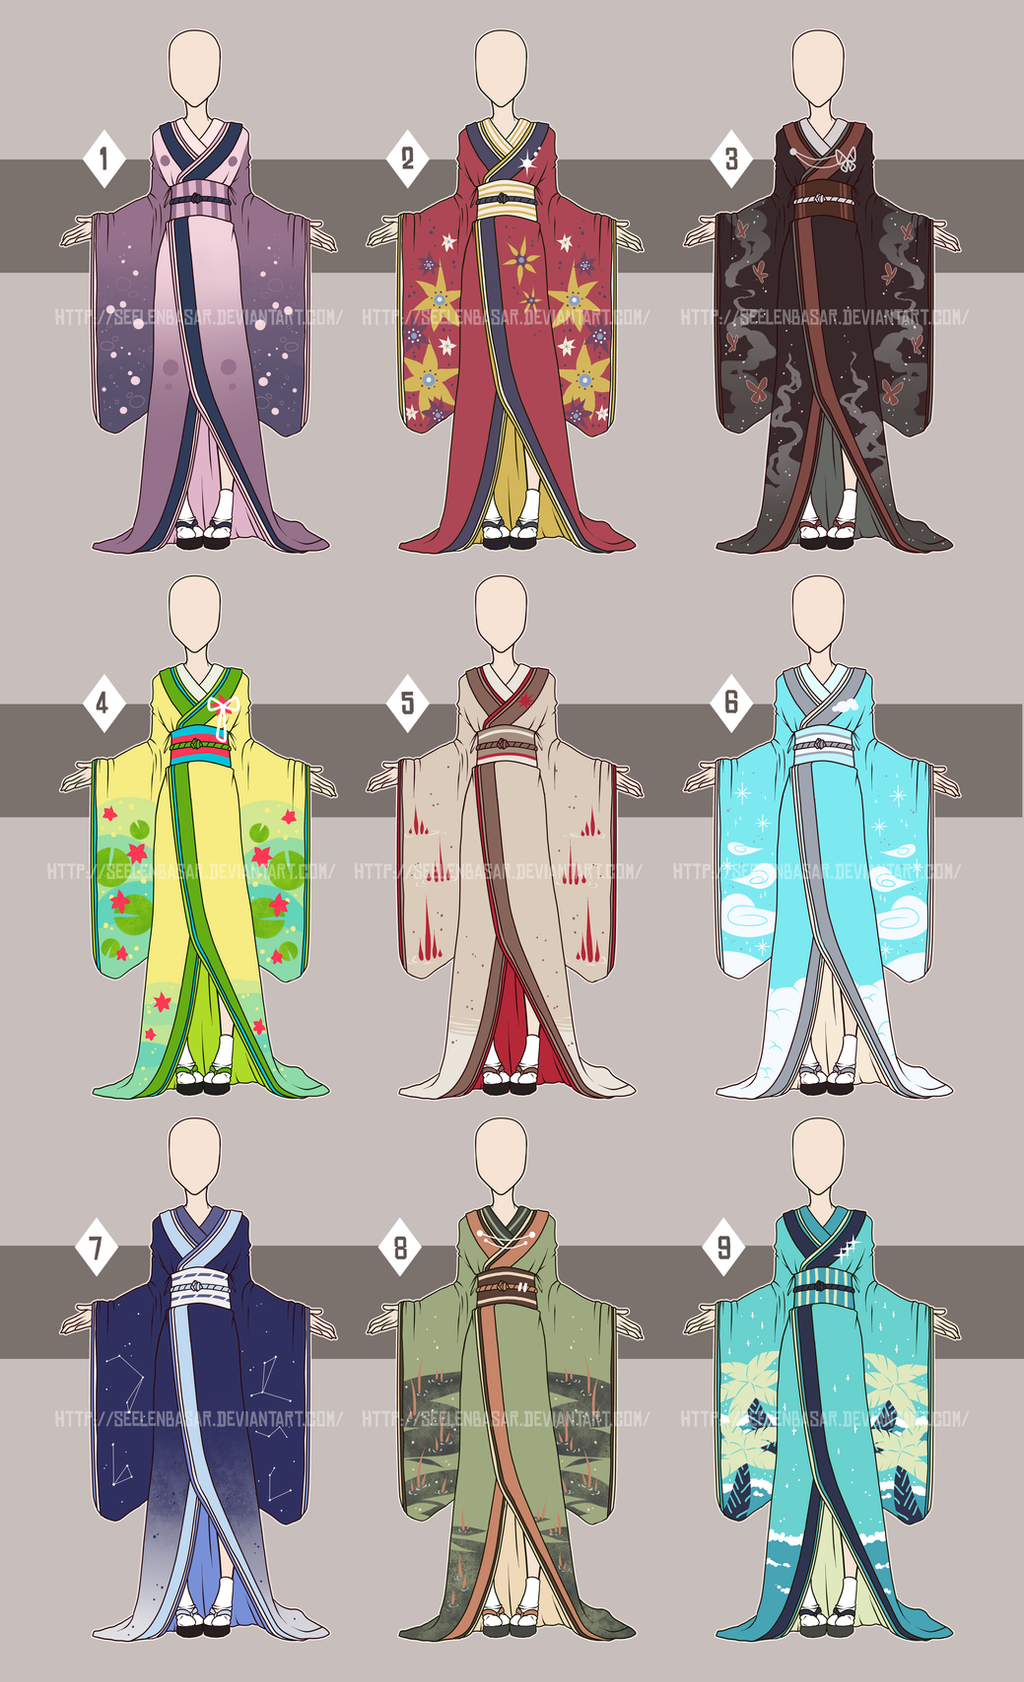 Kimono-battle: open or closed?